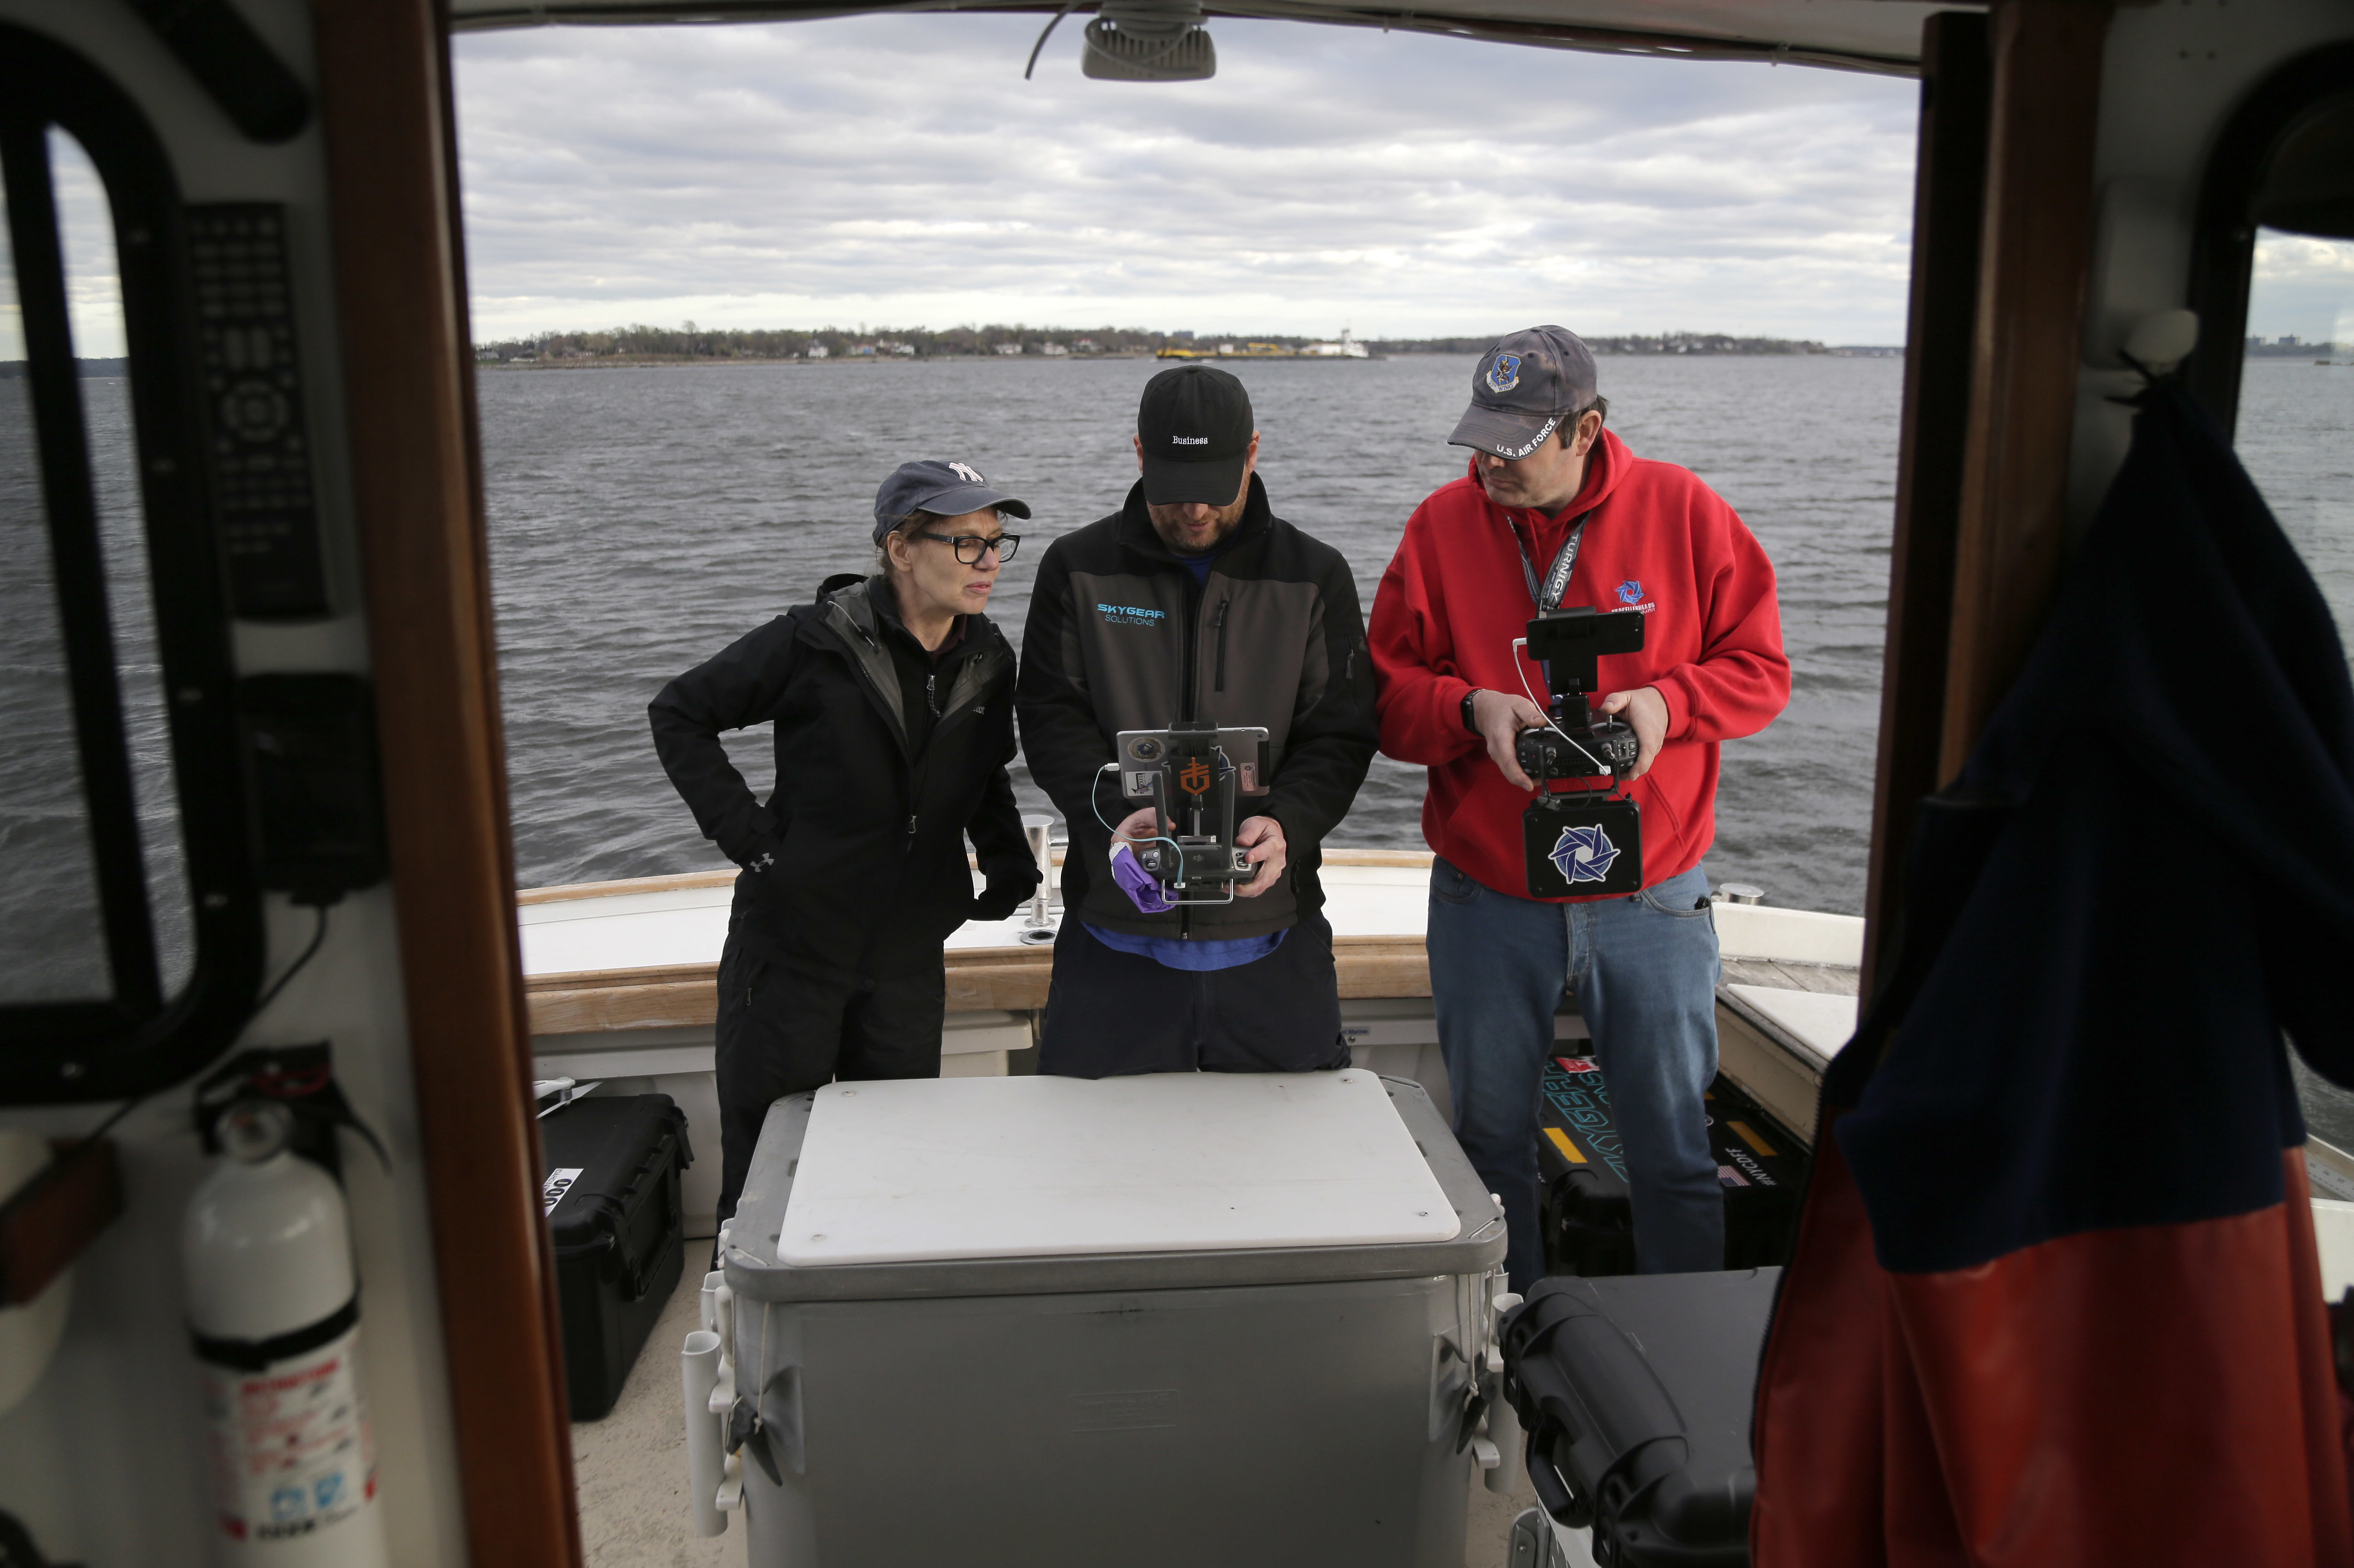 In this April 29, 2018, photo, artist Melinda Hunt, president of The Hart Island Project, left, and drone operator Parker Gyokeres, right, look over the footage recorded by Daniel Herbert from the drone flight over Hart Island in New York